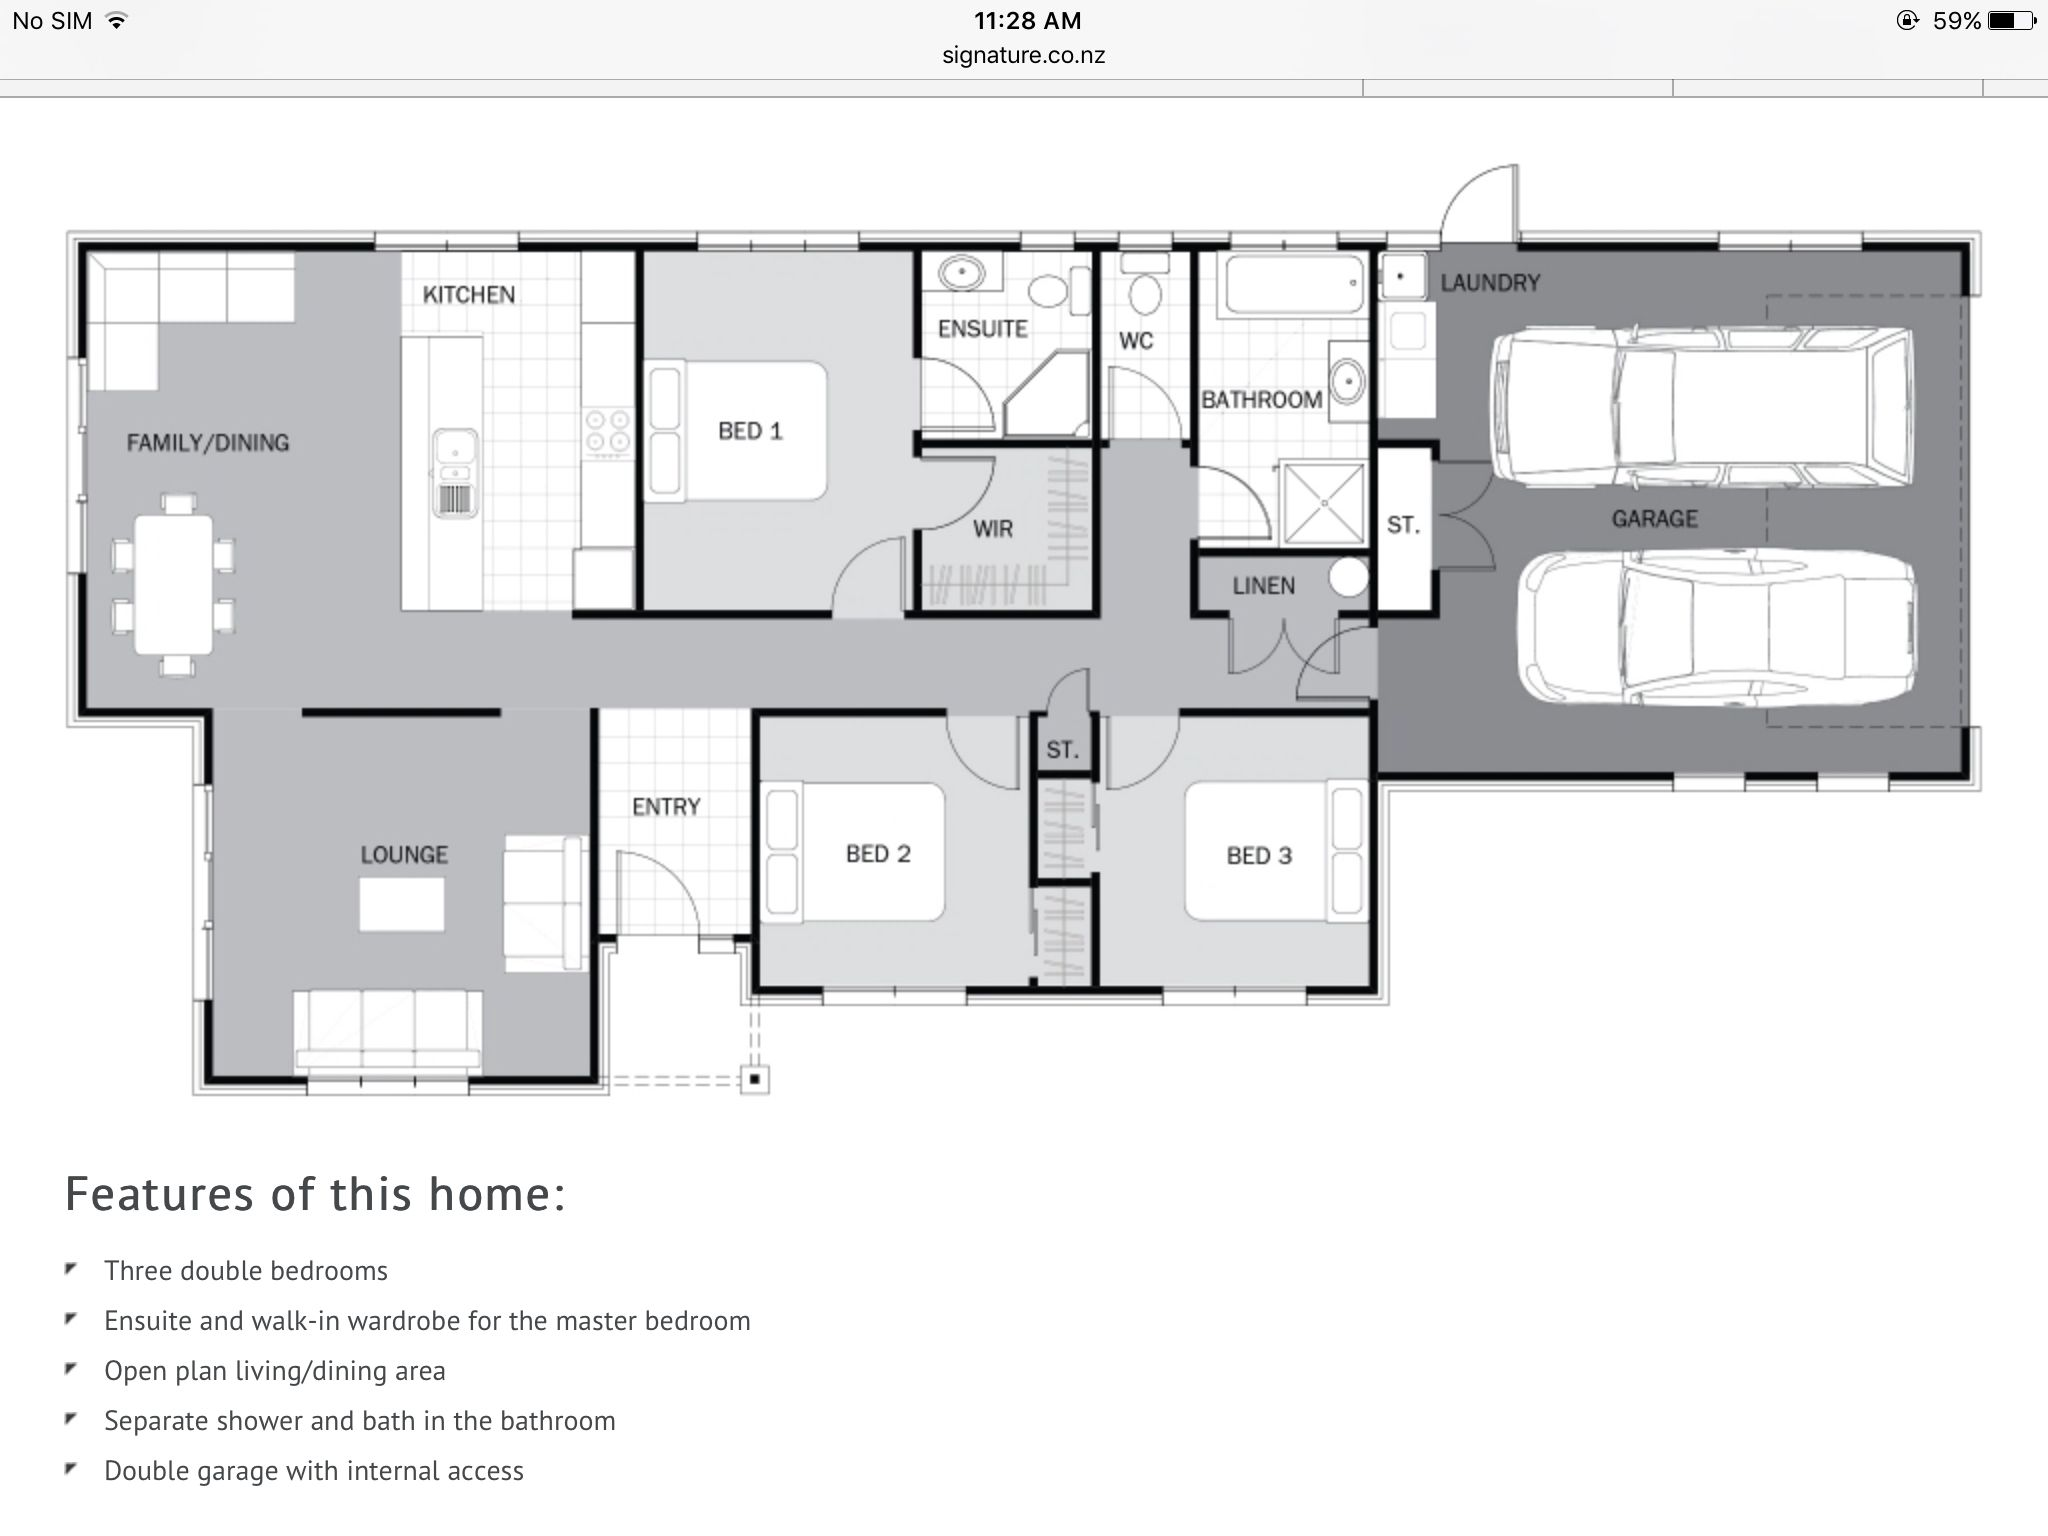 House Plans New Zealand. Classic and simple Basement